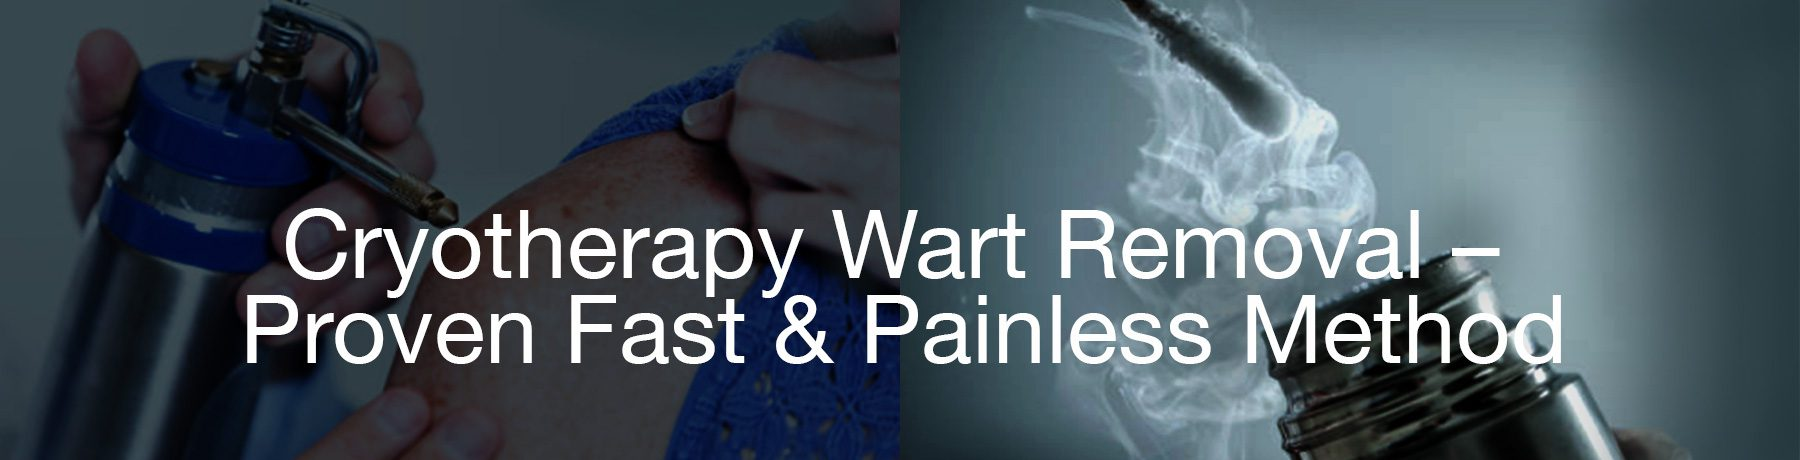 cryotherapy wart removal